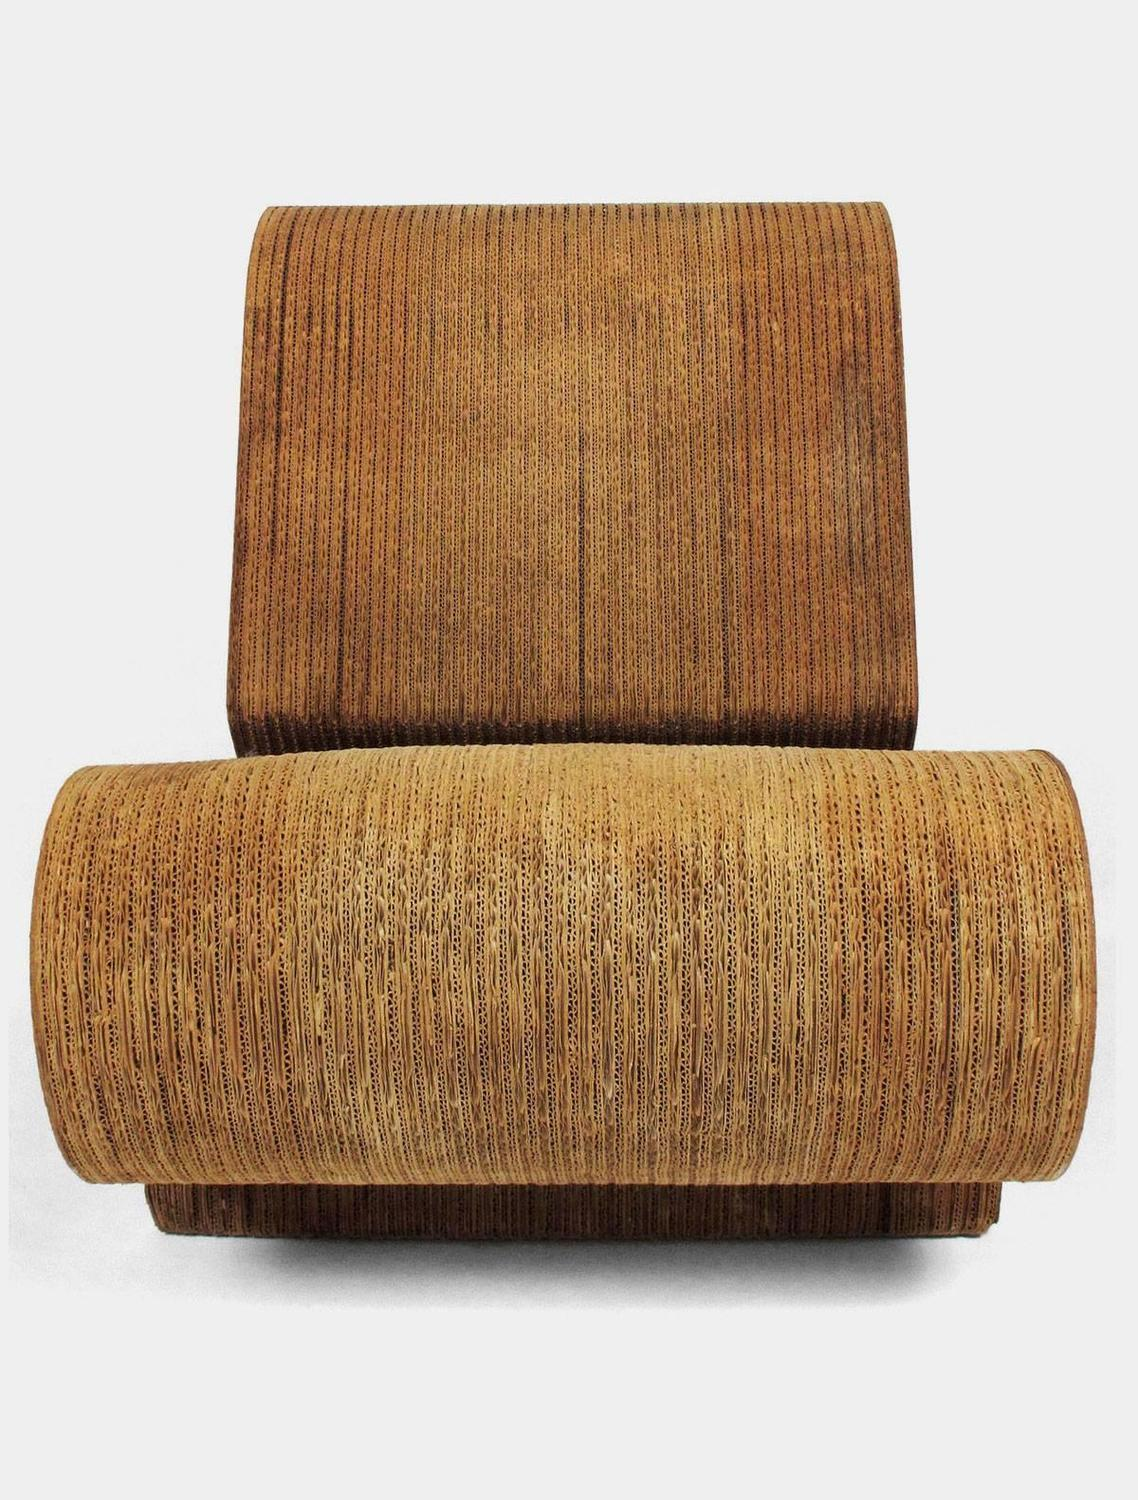 frank gehry cardboard chairs antique club quoteasy edges quot contour chair for sale at 1stdibs